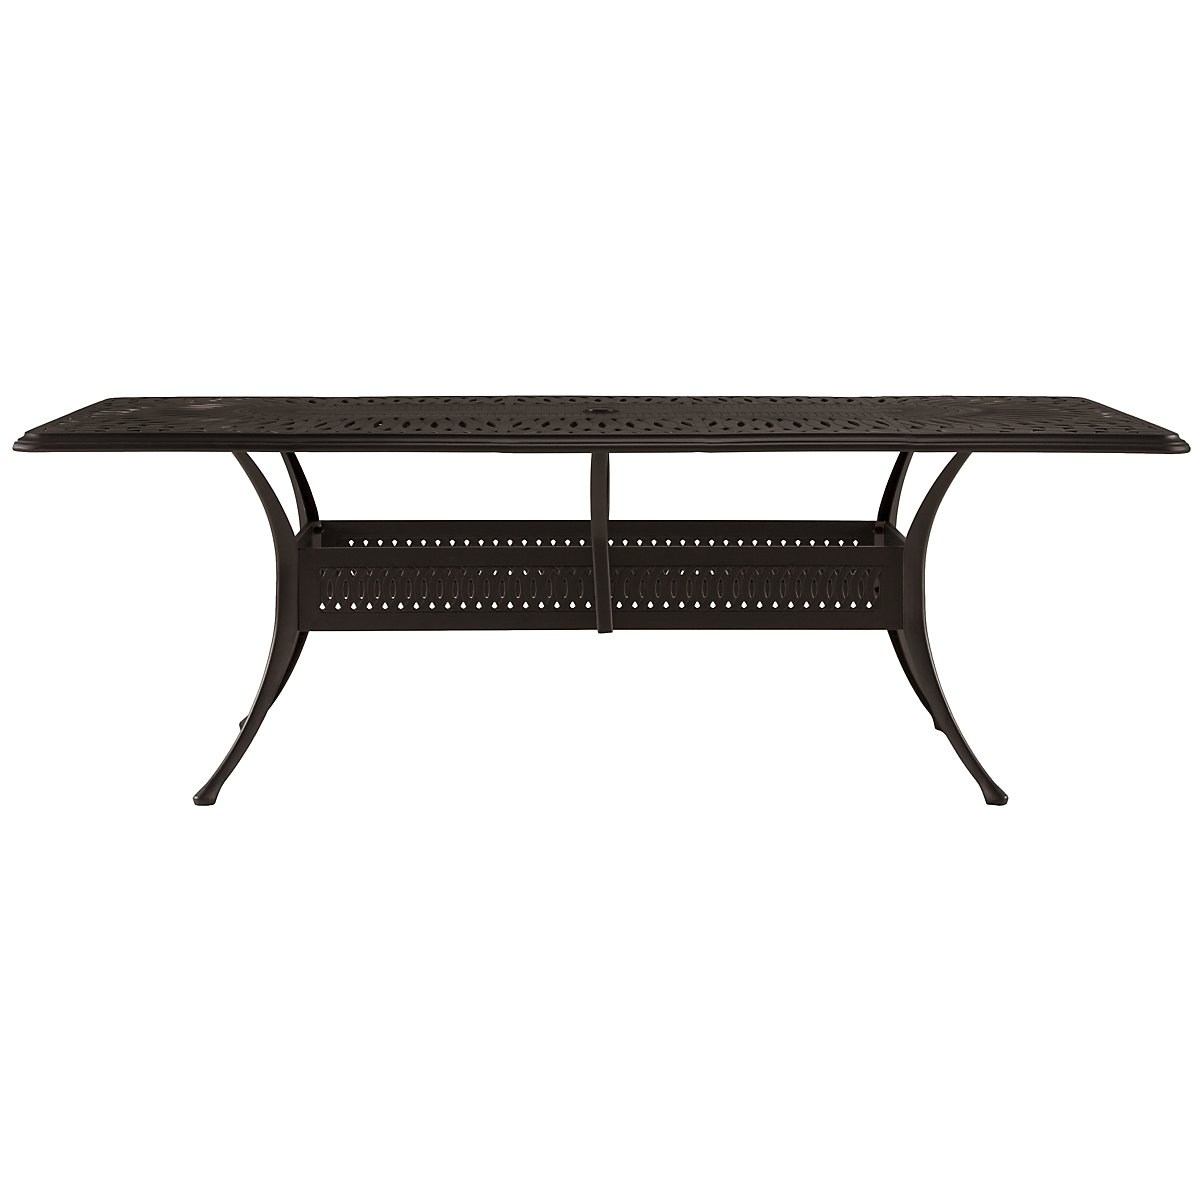 "Primera Dark Tone 87"" Rectangular Table"